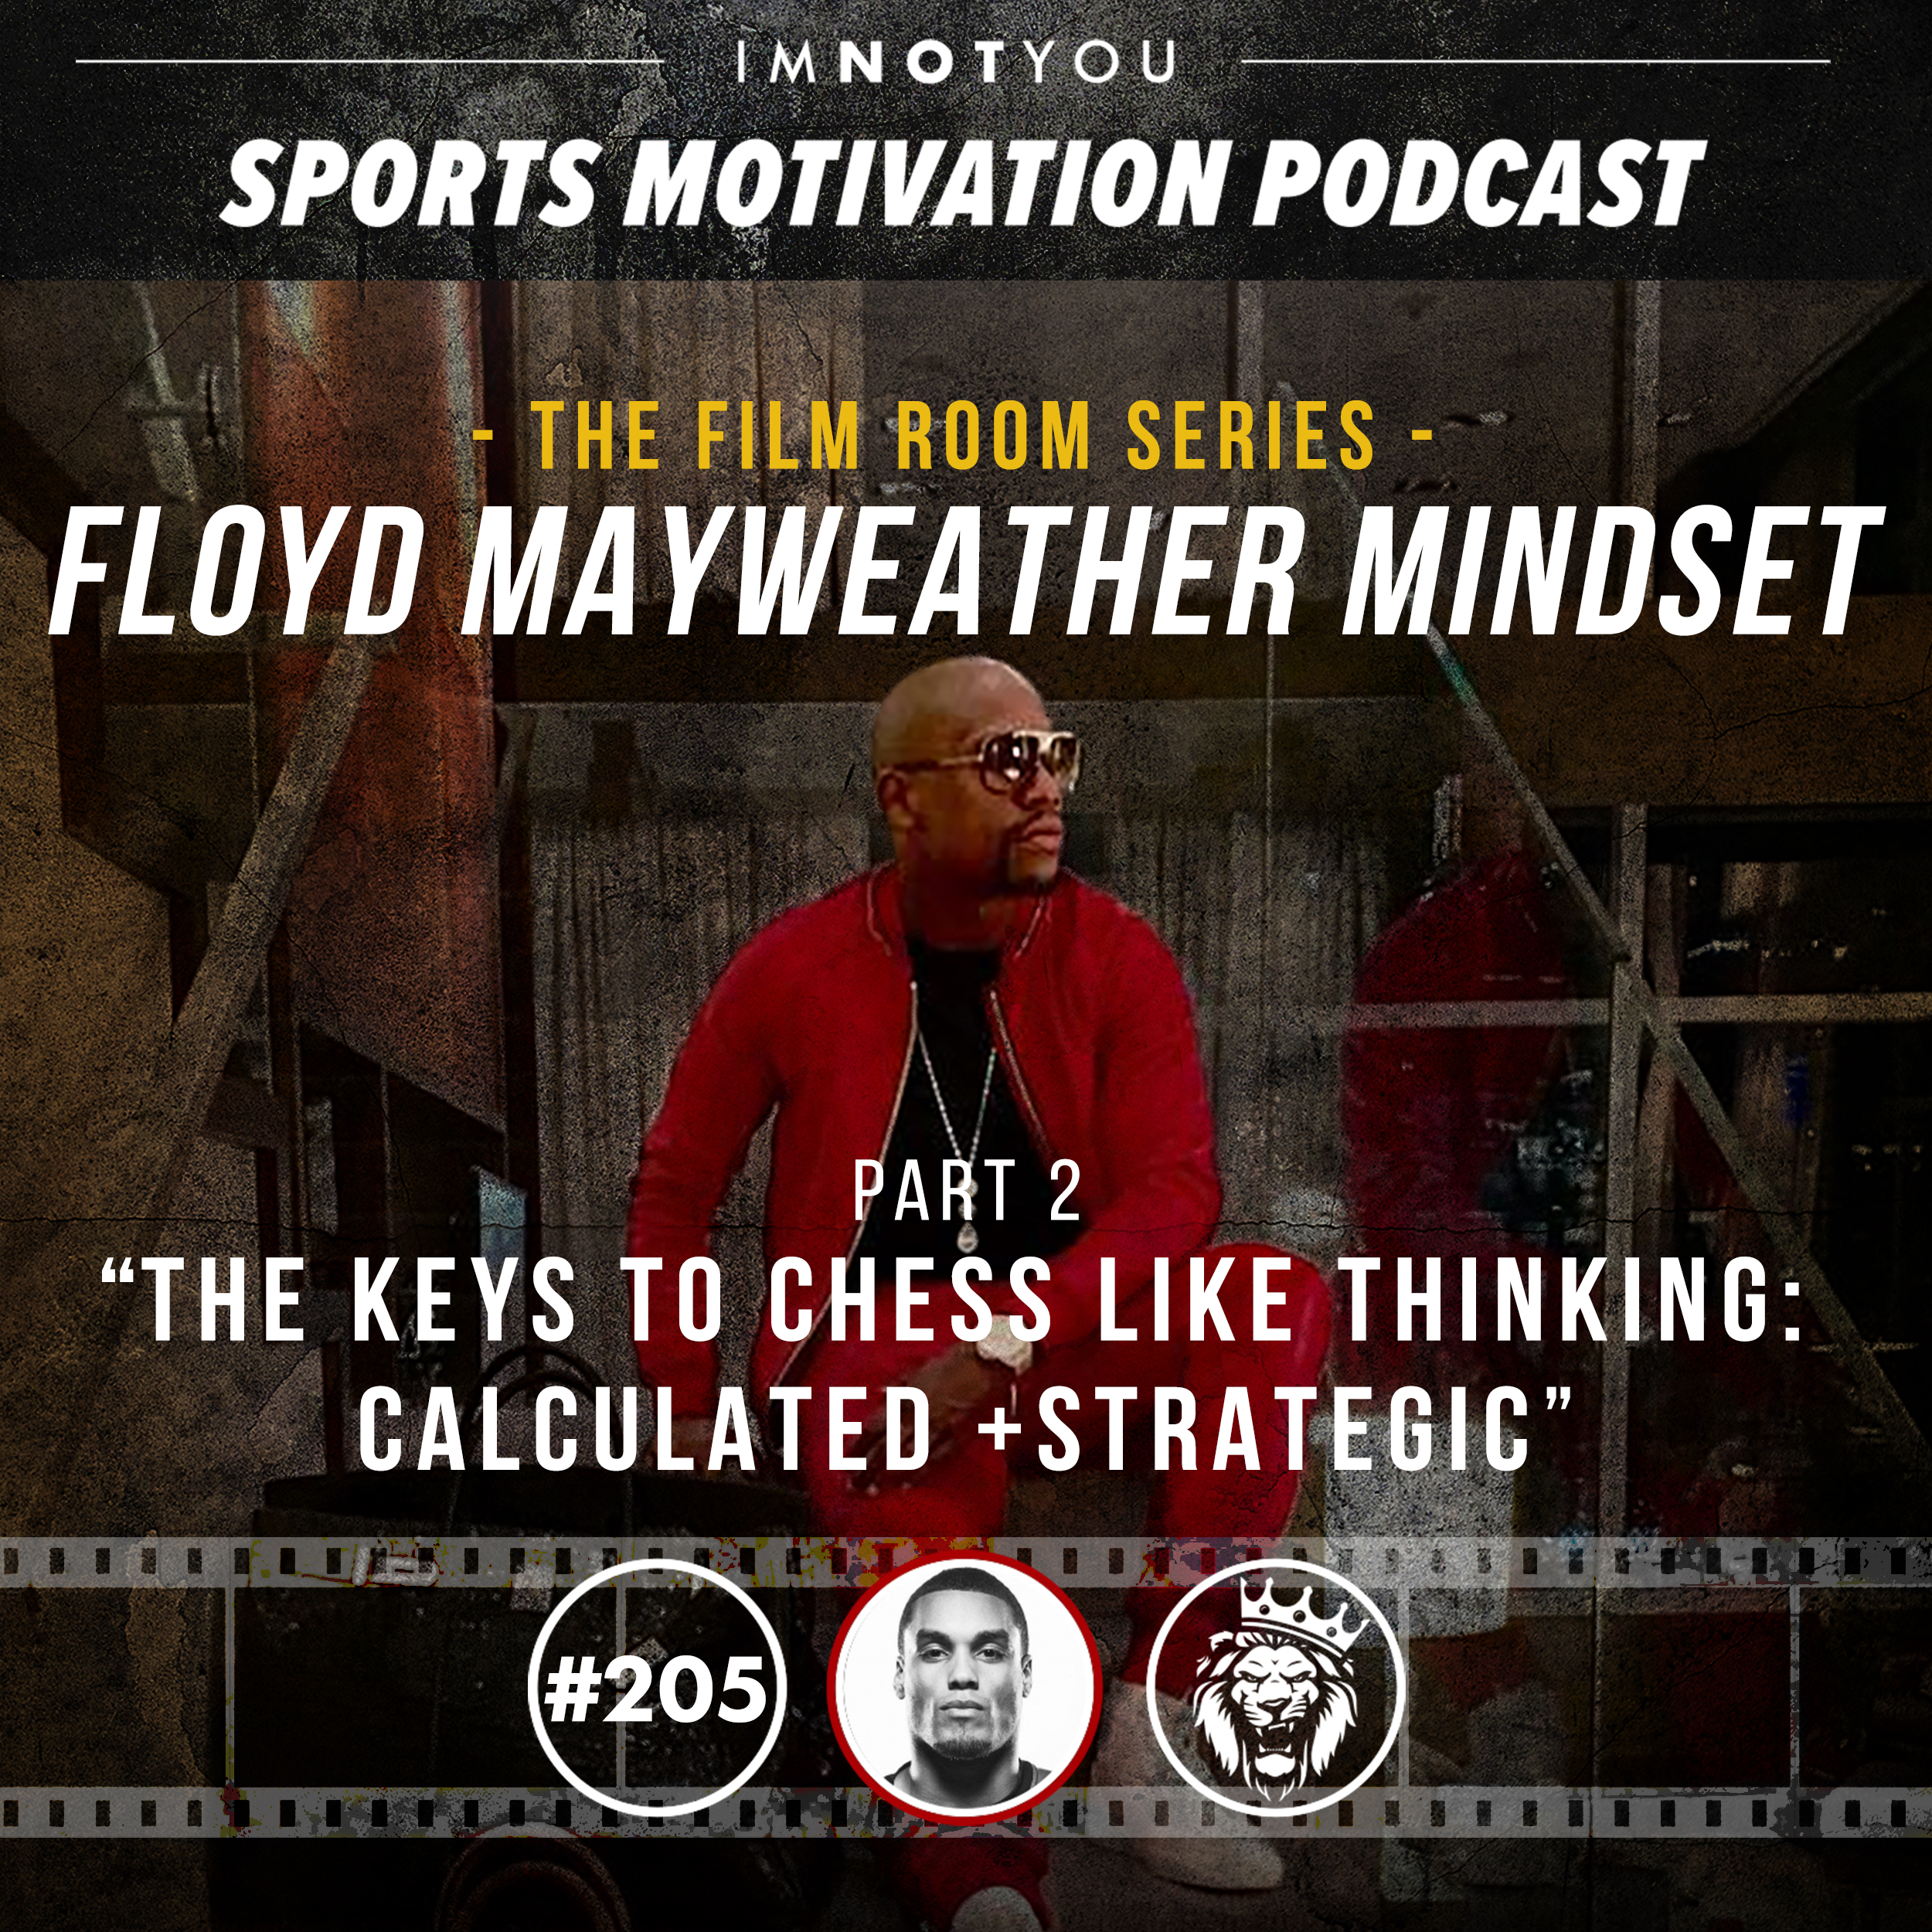 205: The Film Room: Floyd Mayweather Mindset, Pt. 2: The Keys To Chess Like Thinking: Calculated + Strategic